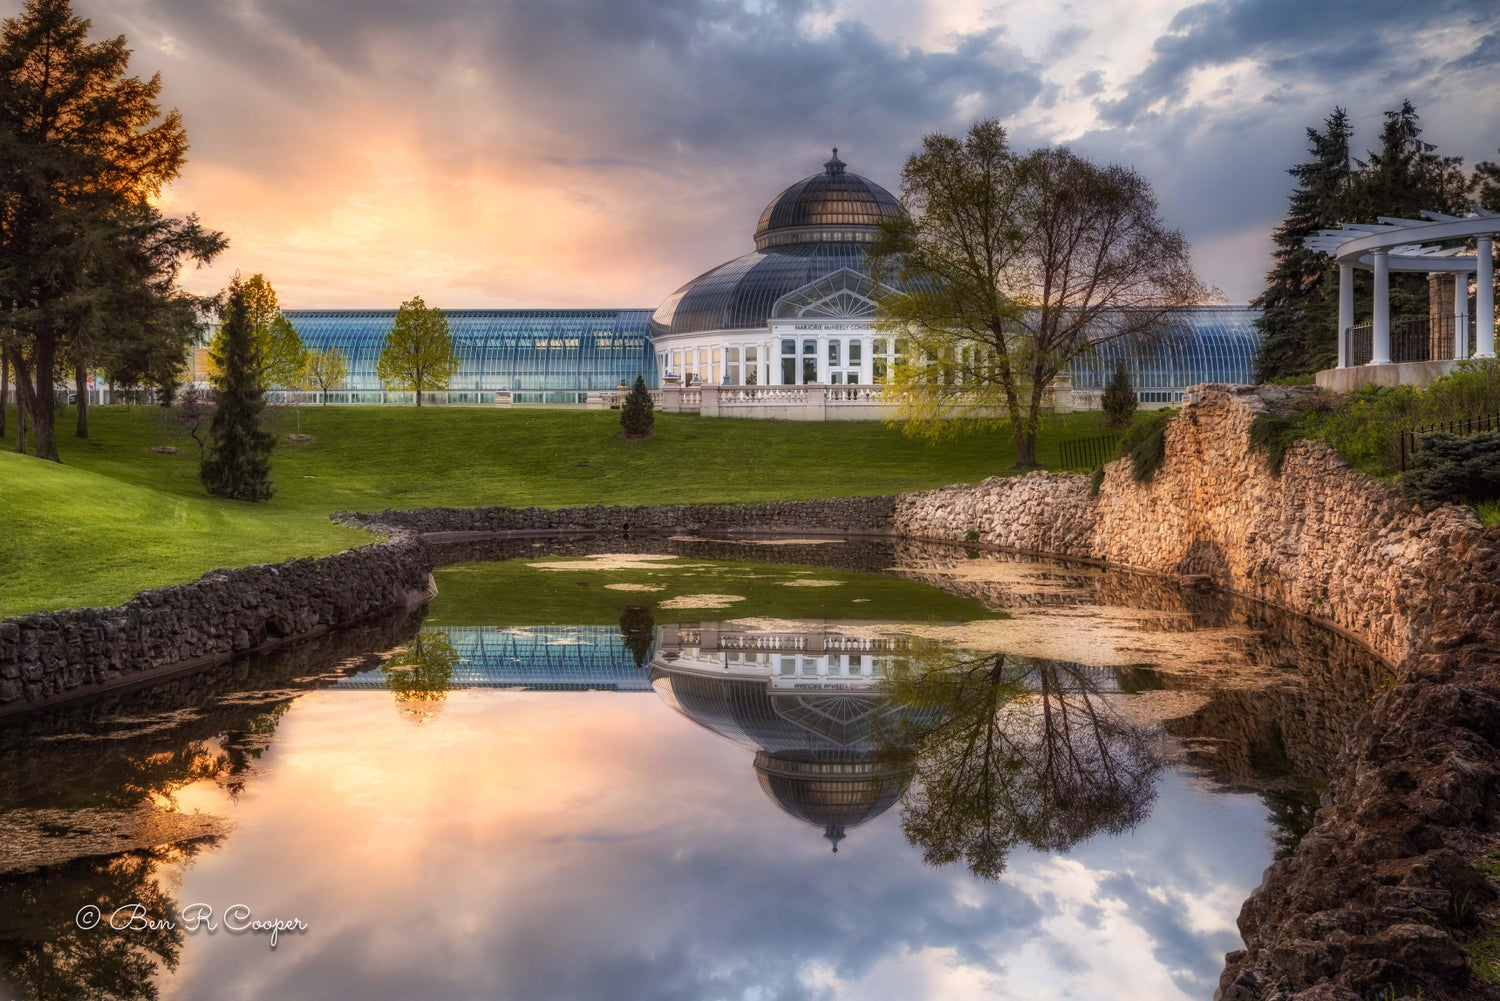 Sunset at the Marjorie McNeely Conservatory